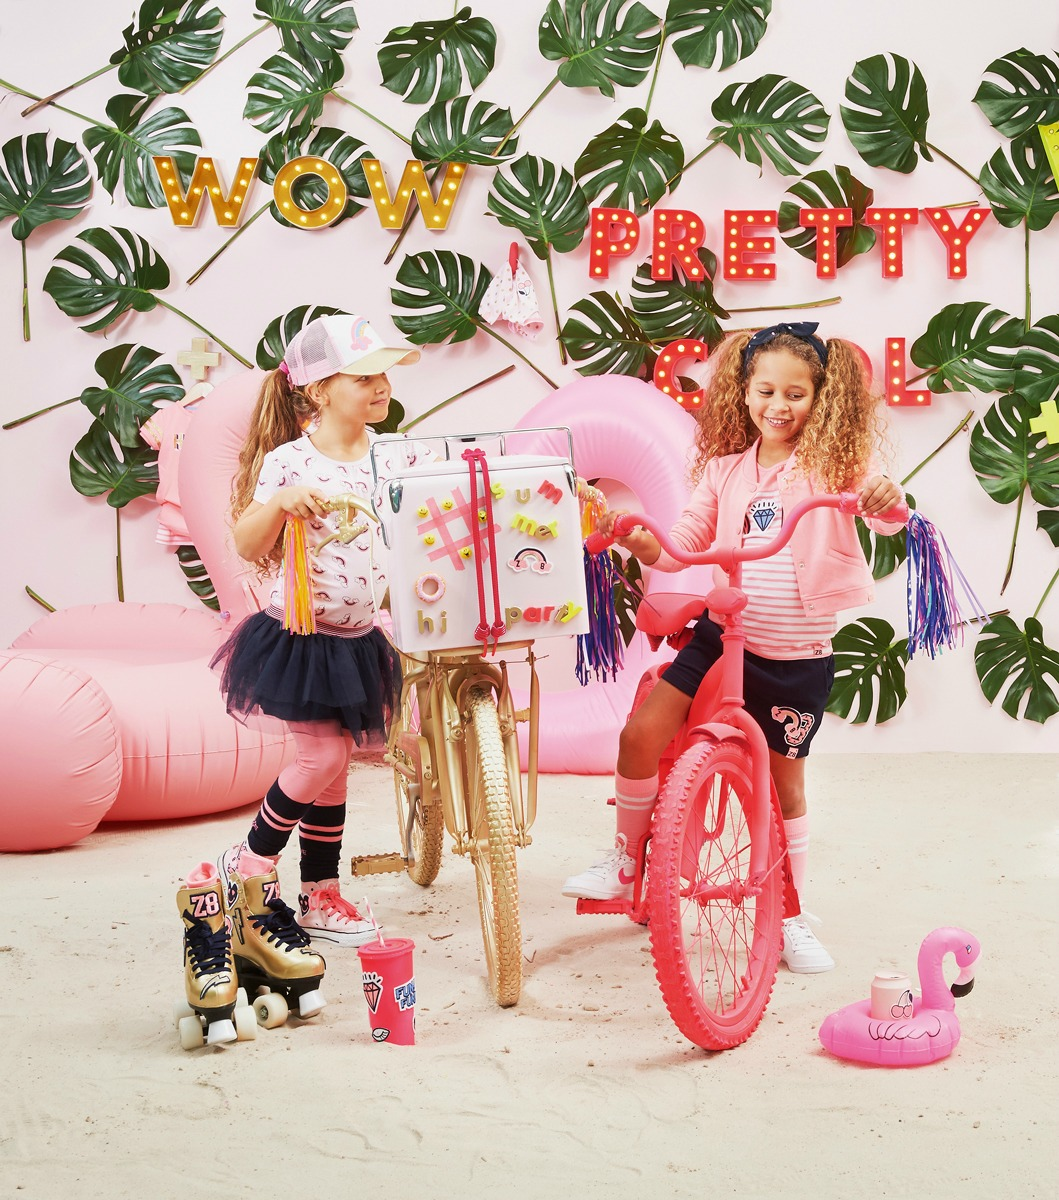 Citaten Zomer 2017 : Coole z zomer girls collectie goodgirlscompany